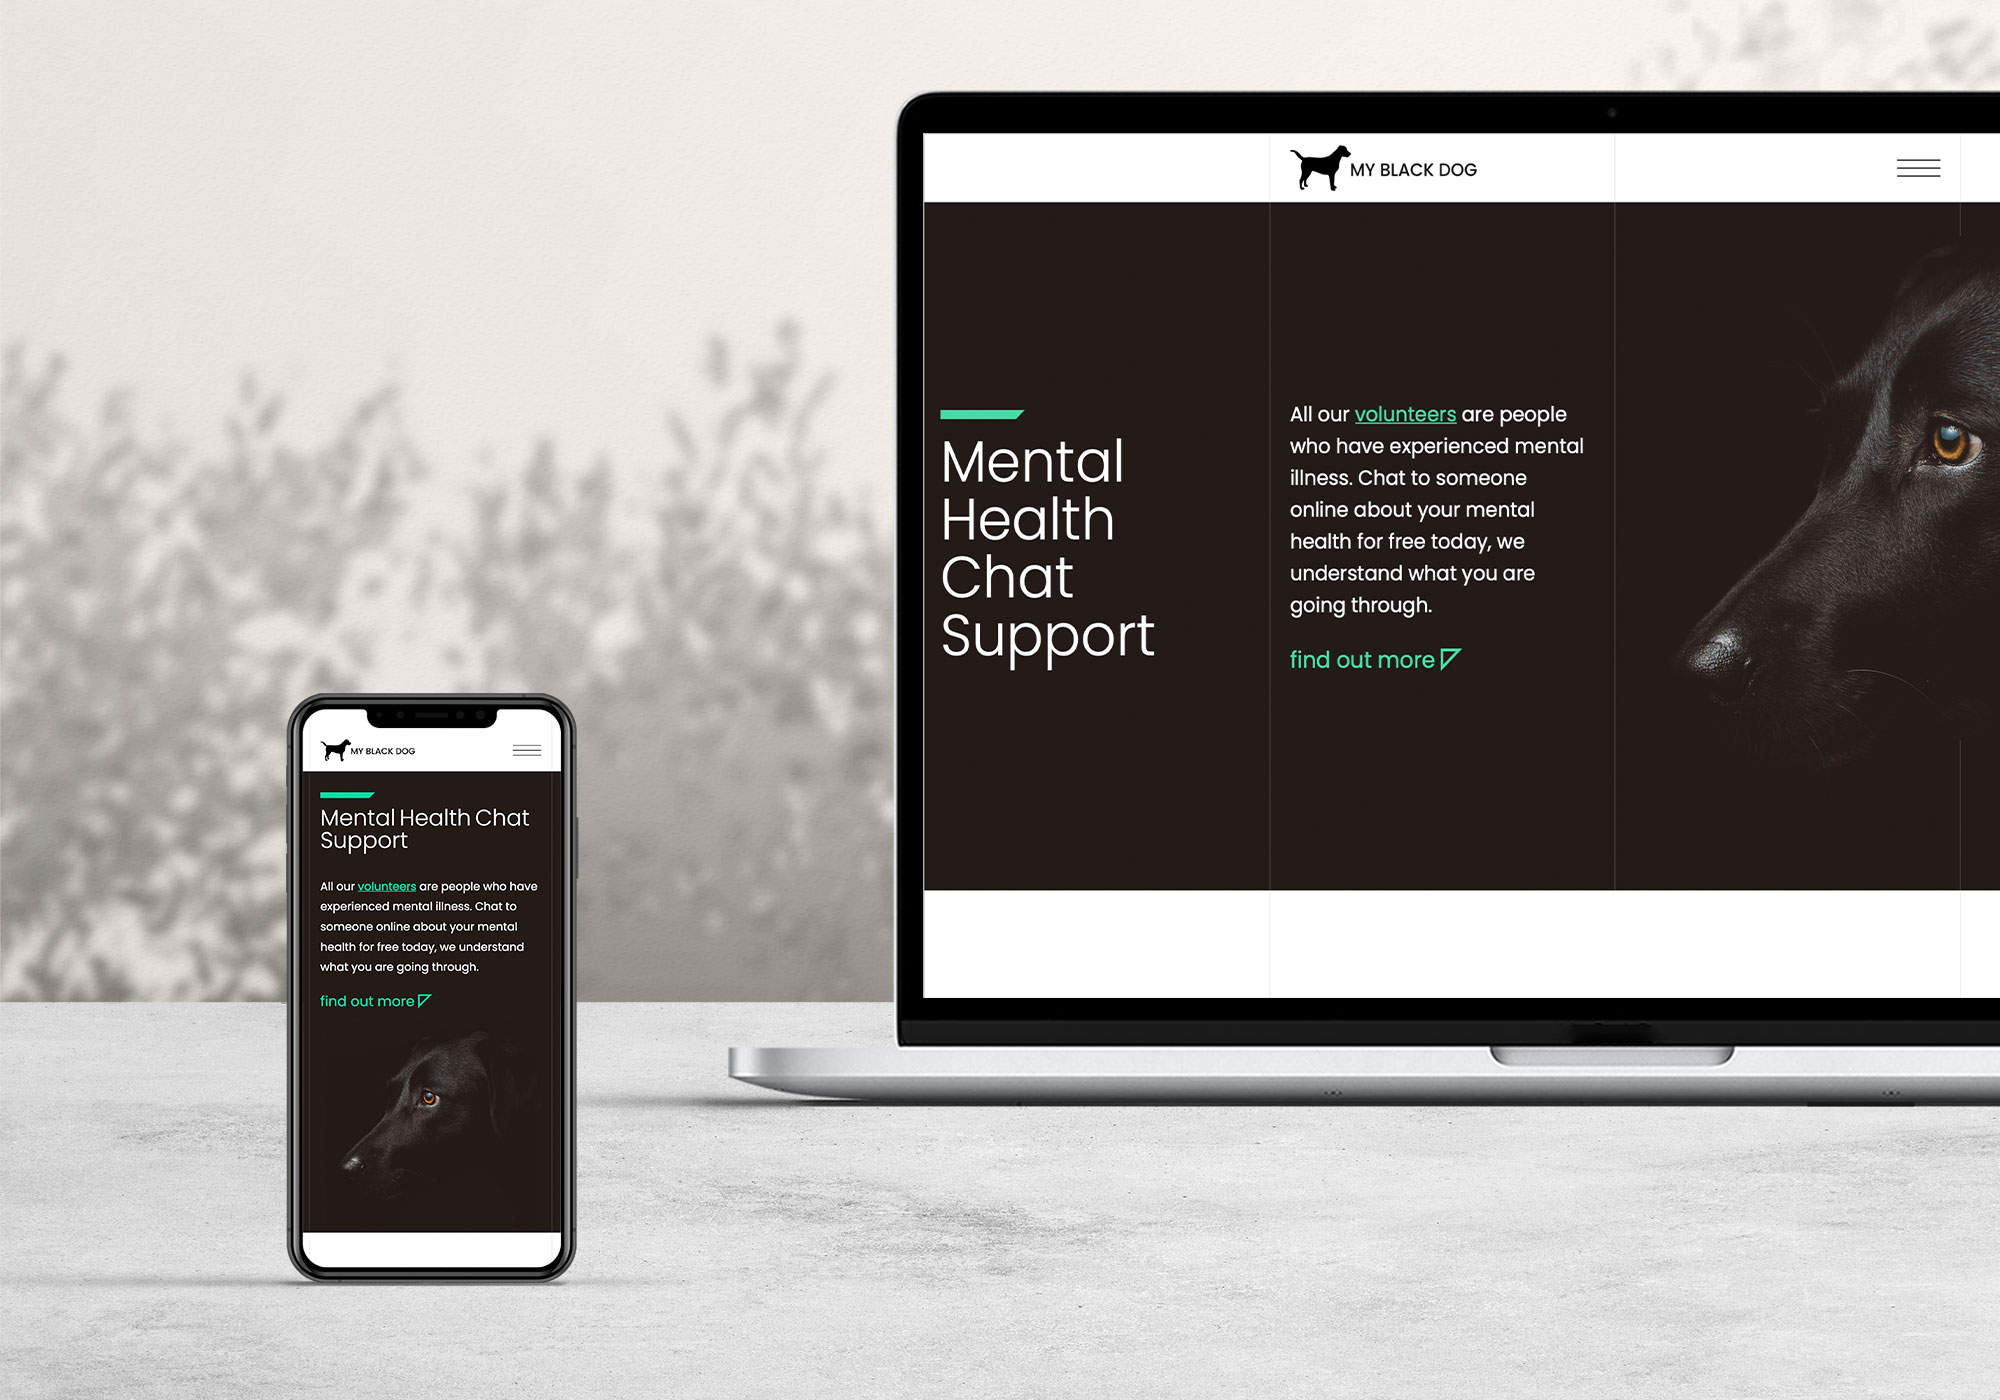 New charity website design for mental health chat service